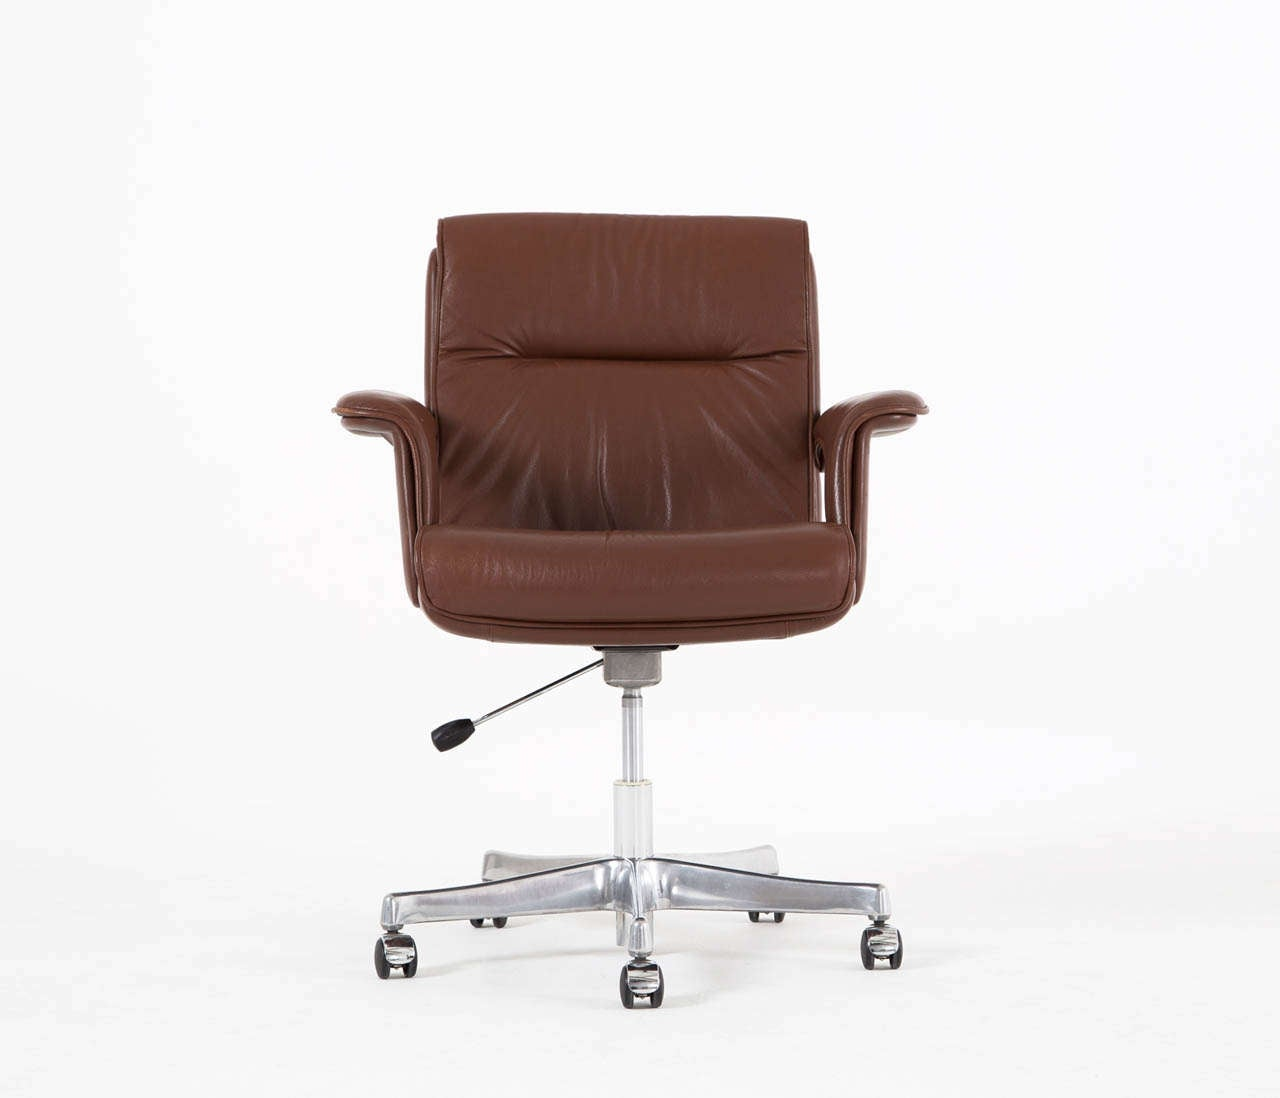 brown office chairs chairfx chair covers eu executive conference desk in